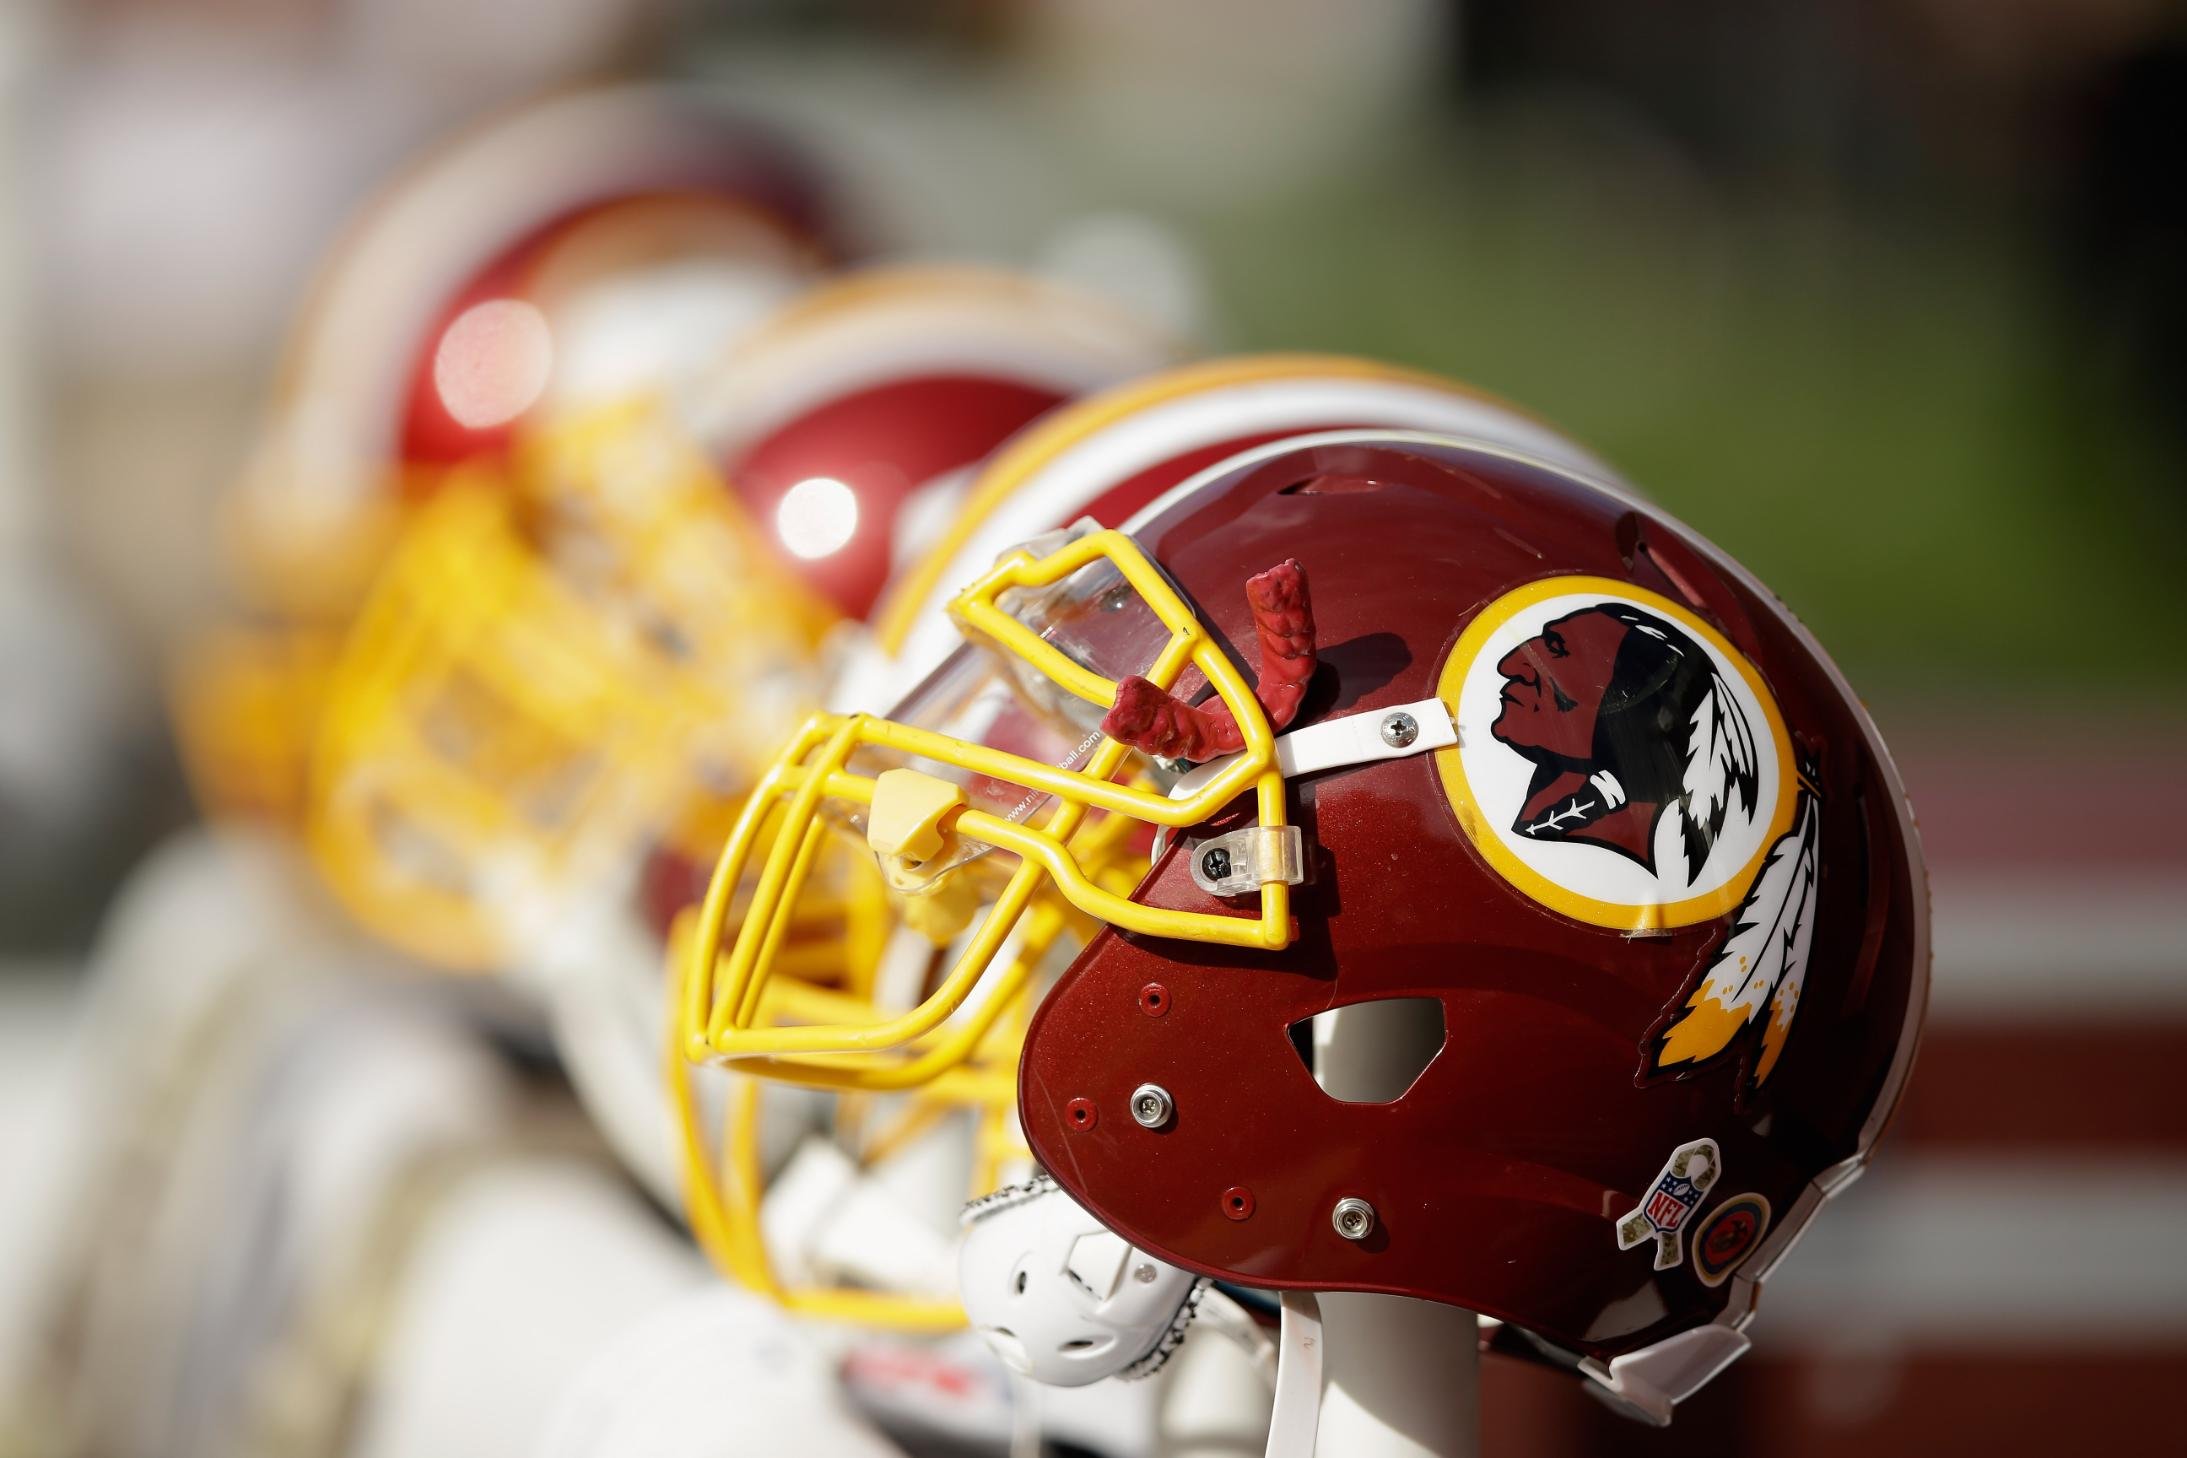 One man holds multiple trademarks on potential Washington Redskins replacement names